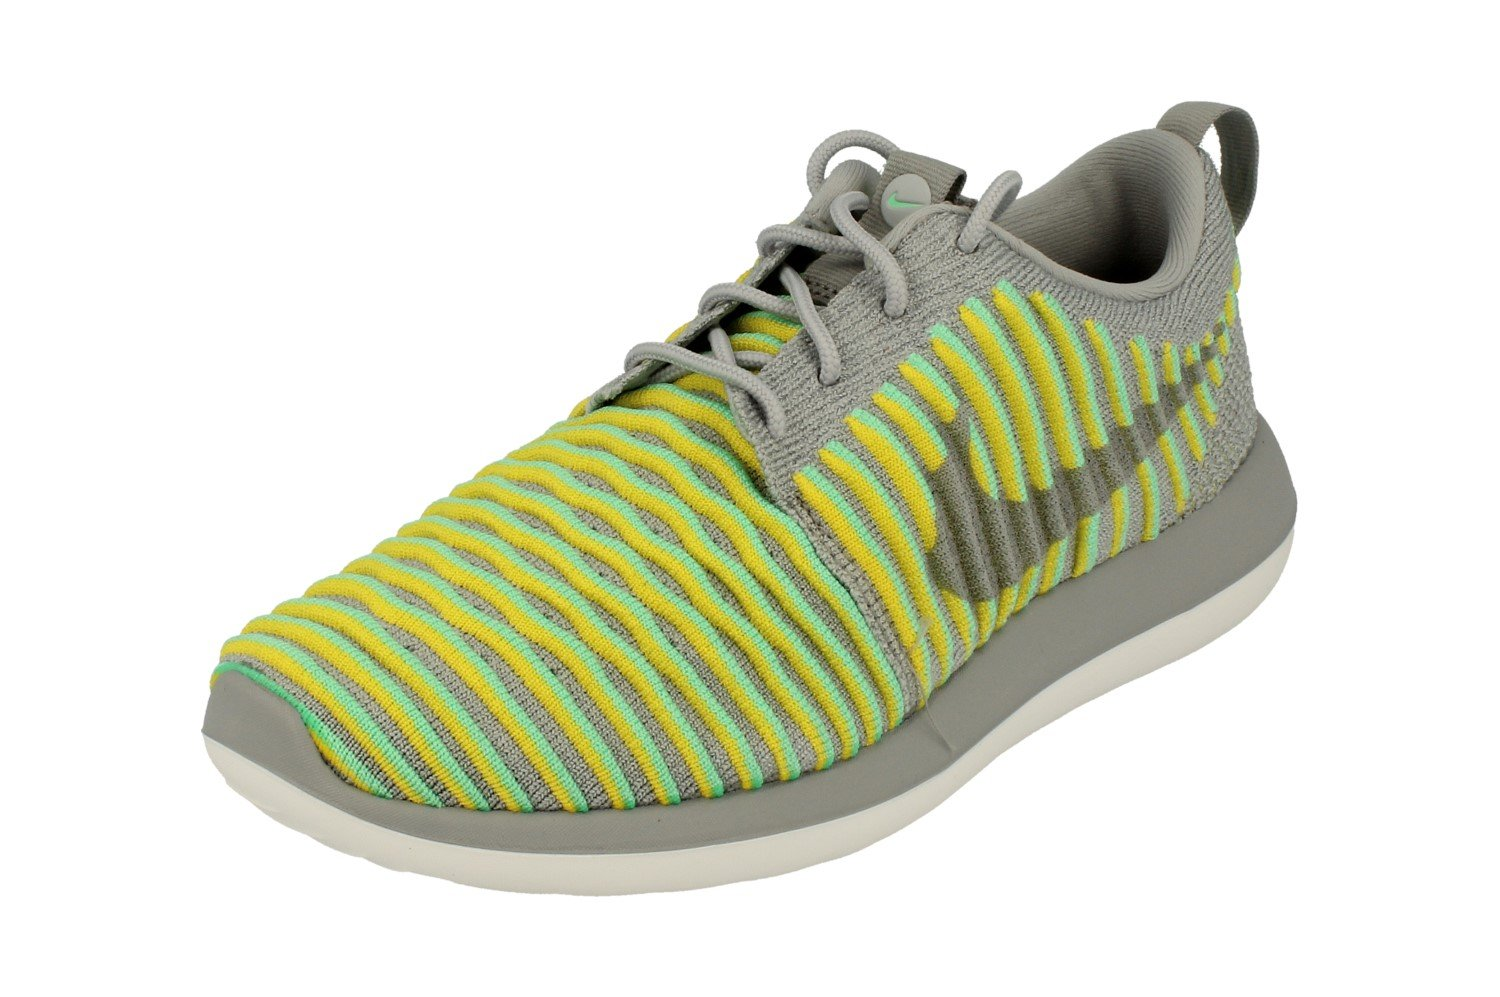 b0449cc1db969 Galleon - NIKE Womens Roshe Two Flyknit Running Trainers 844929 Sneakers  Shoes (UK 3 US 5.5 EU 36